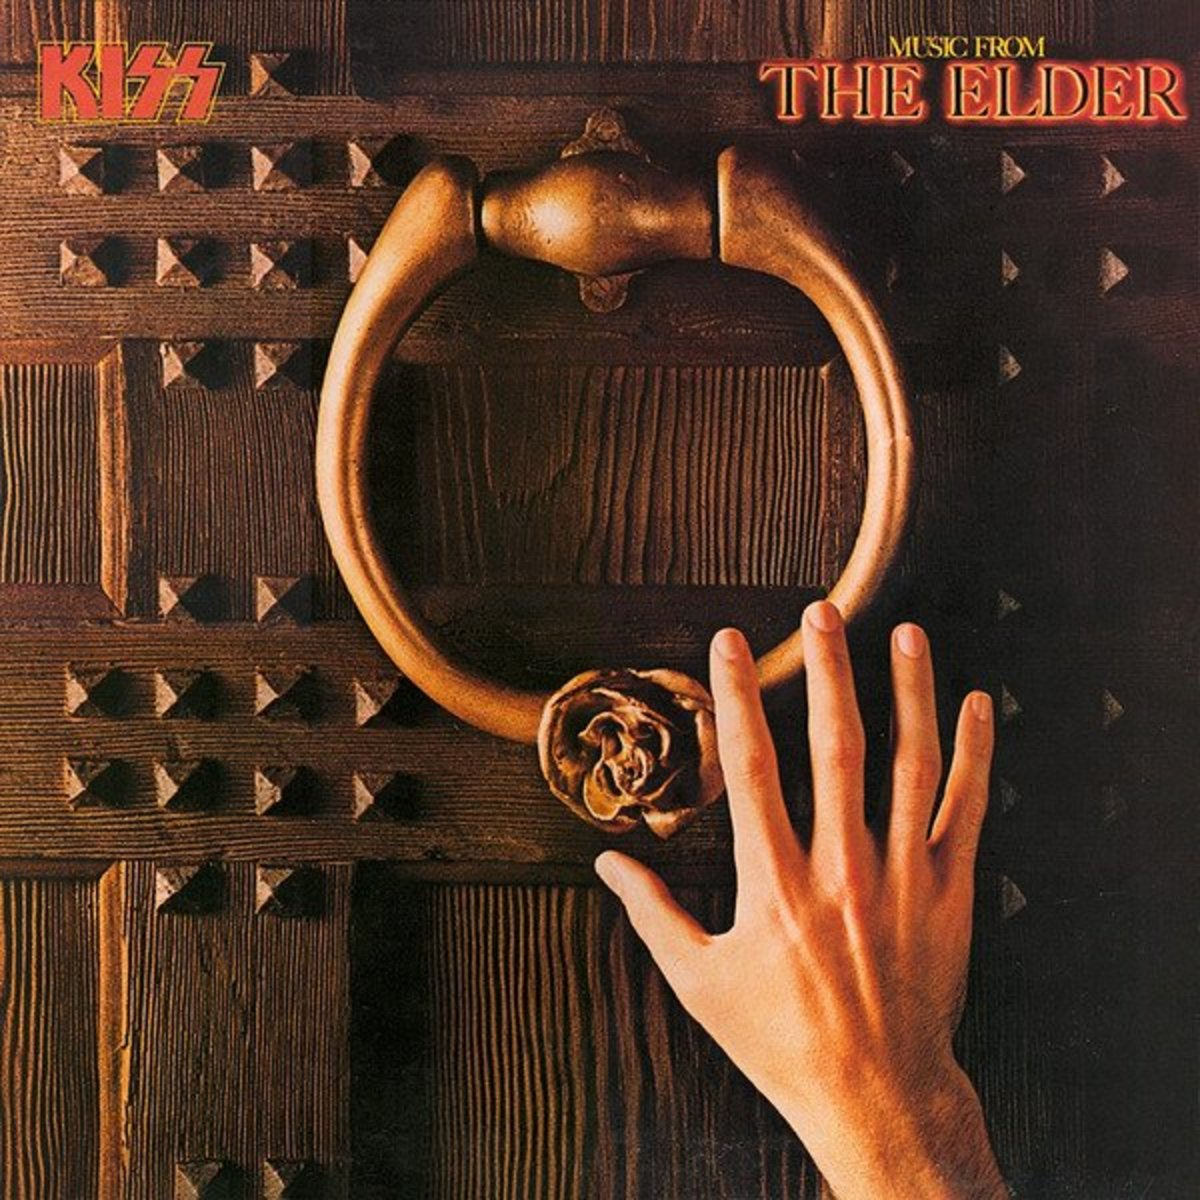 retro-metal-review-kiss-music-from-the-elder-1981